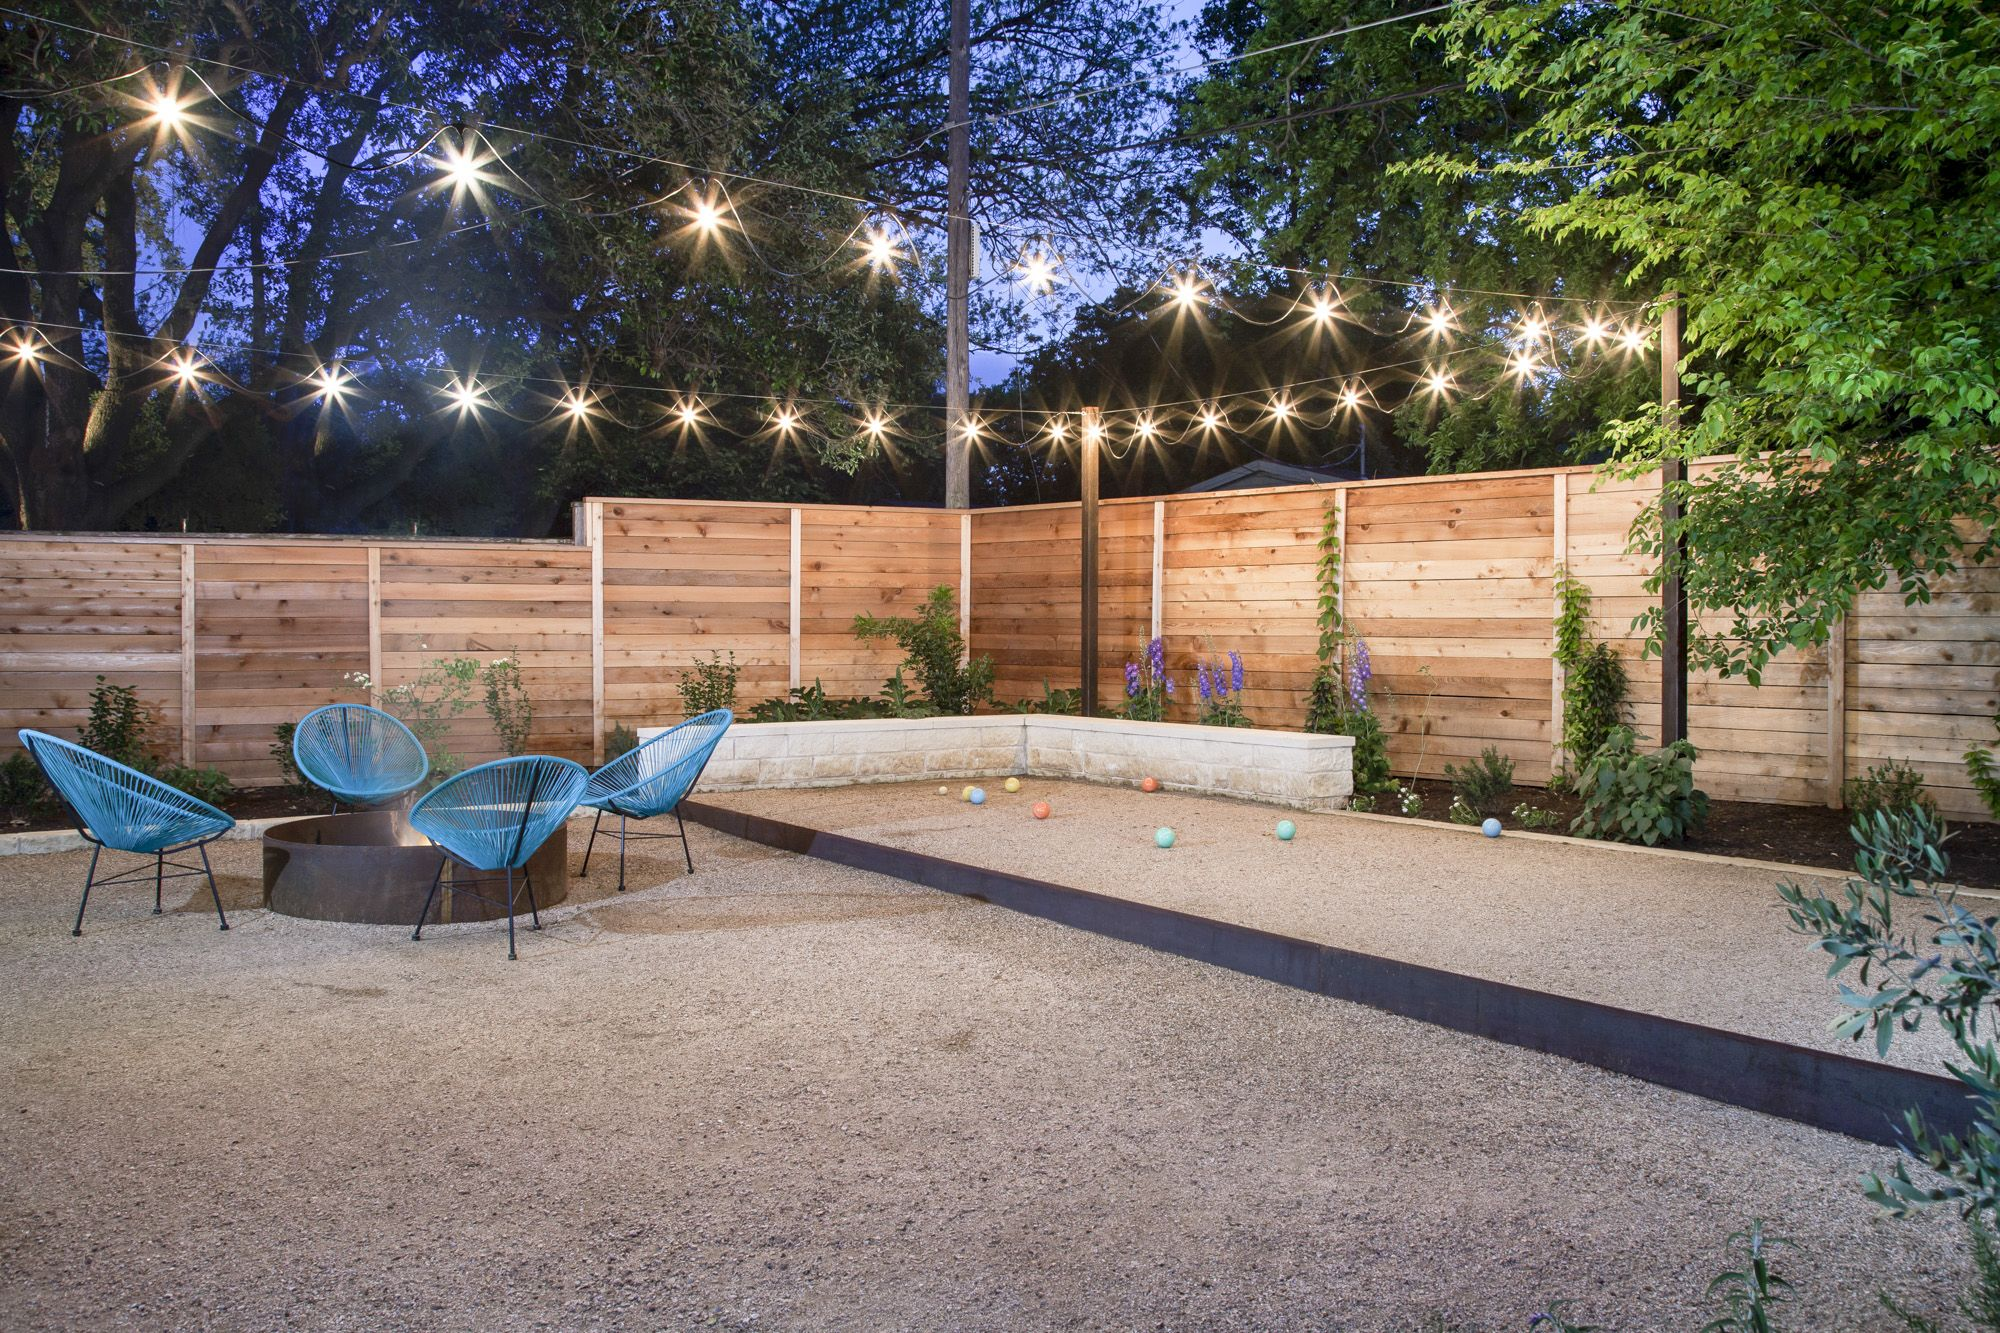 fire pit and bocce ball court somos pinterest bocce ball